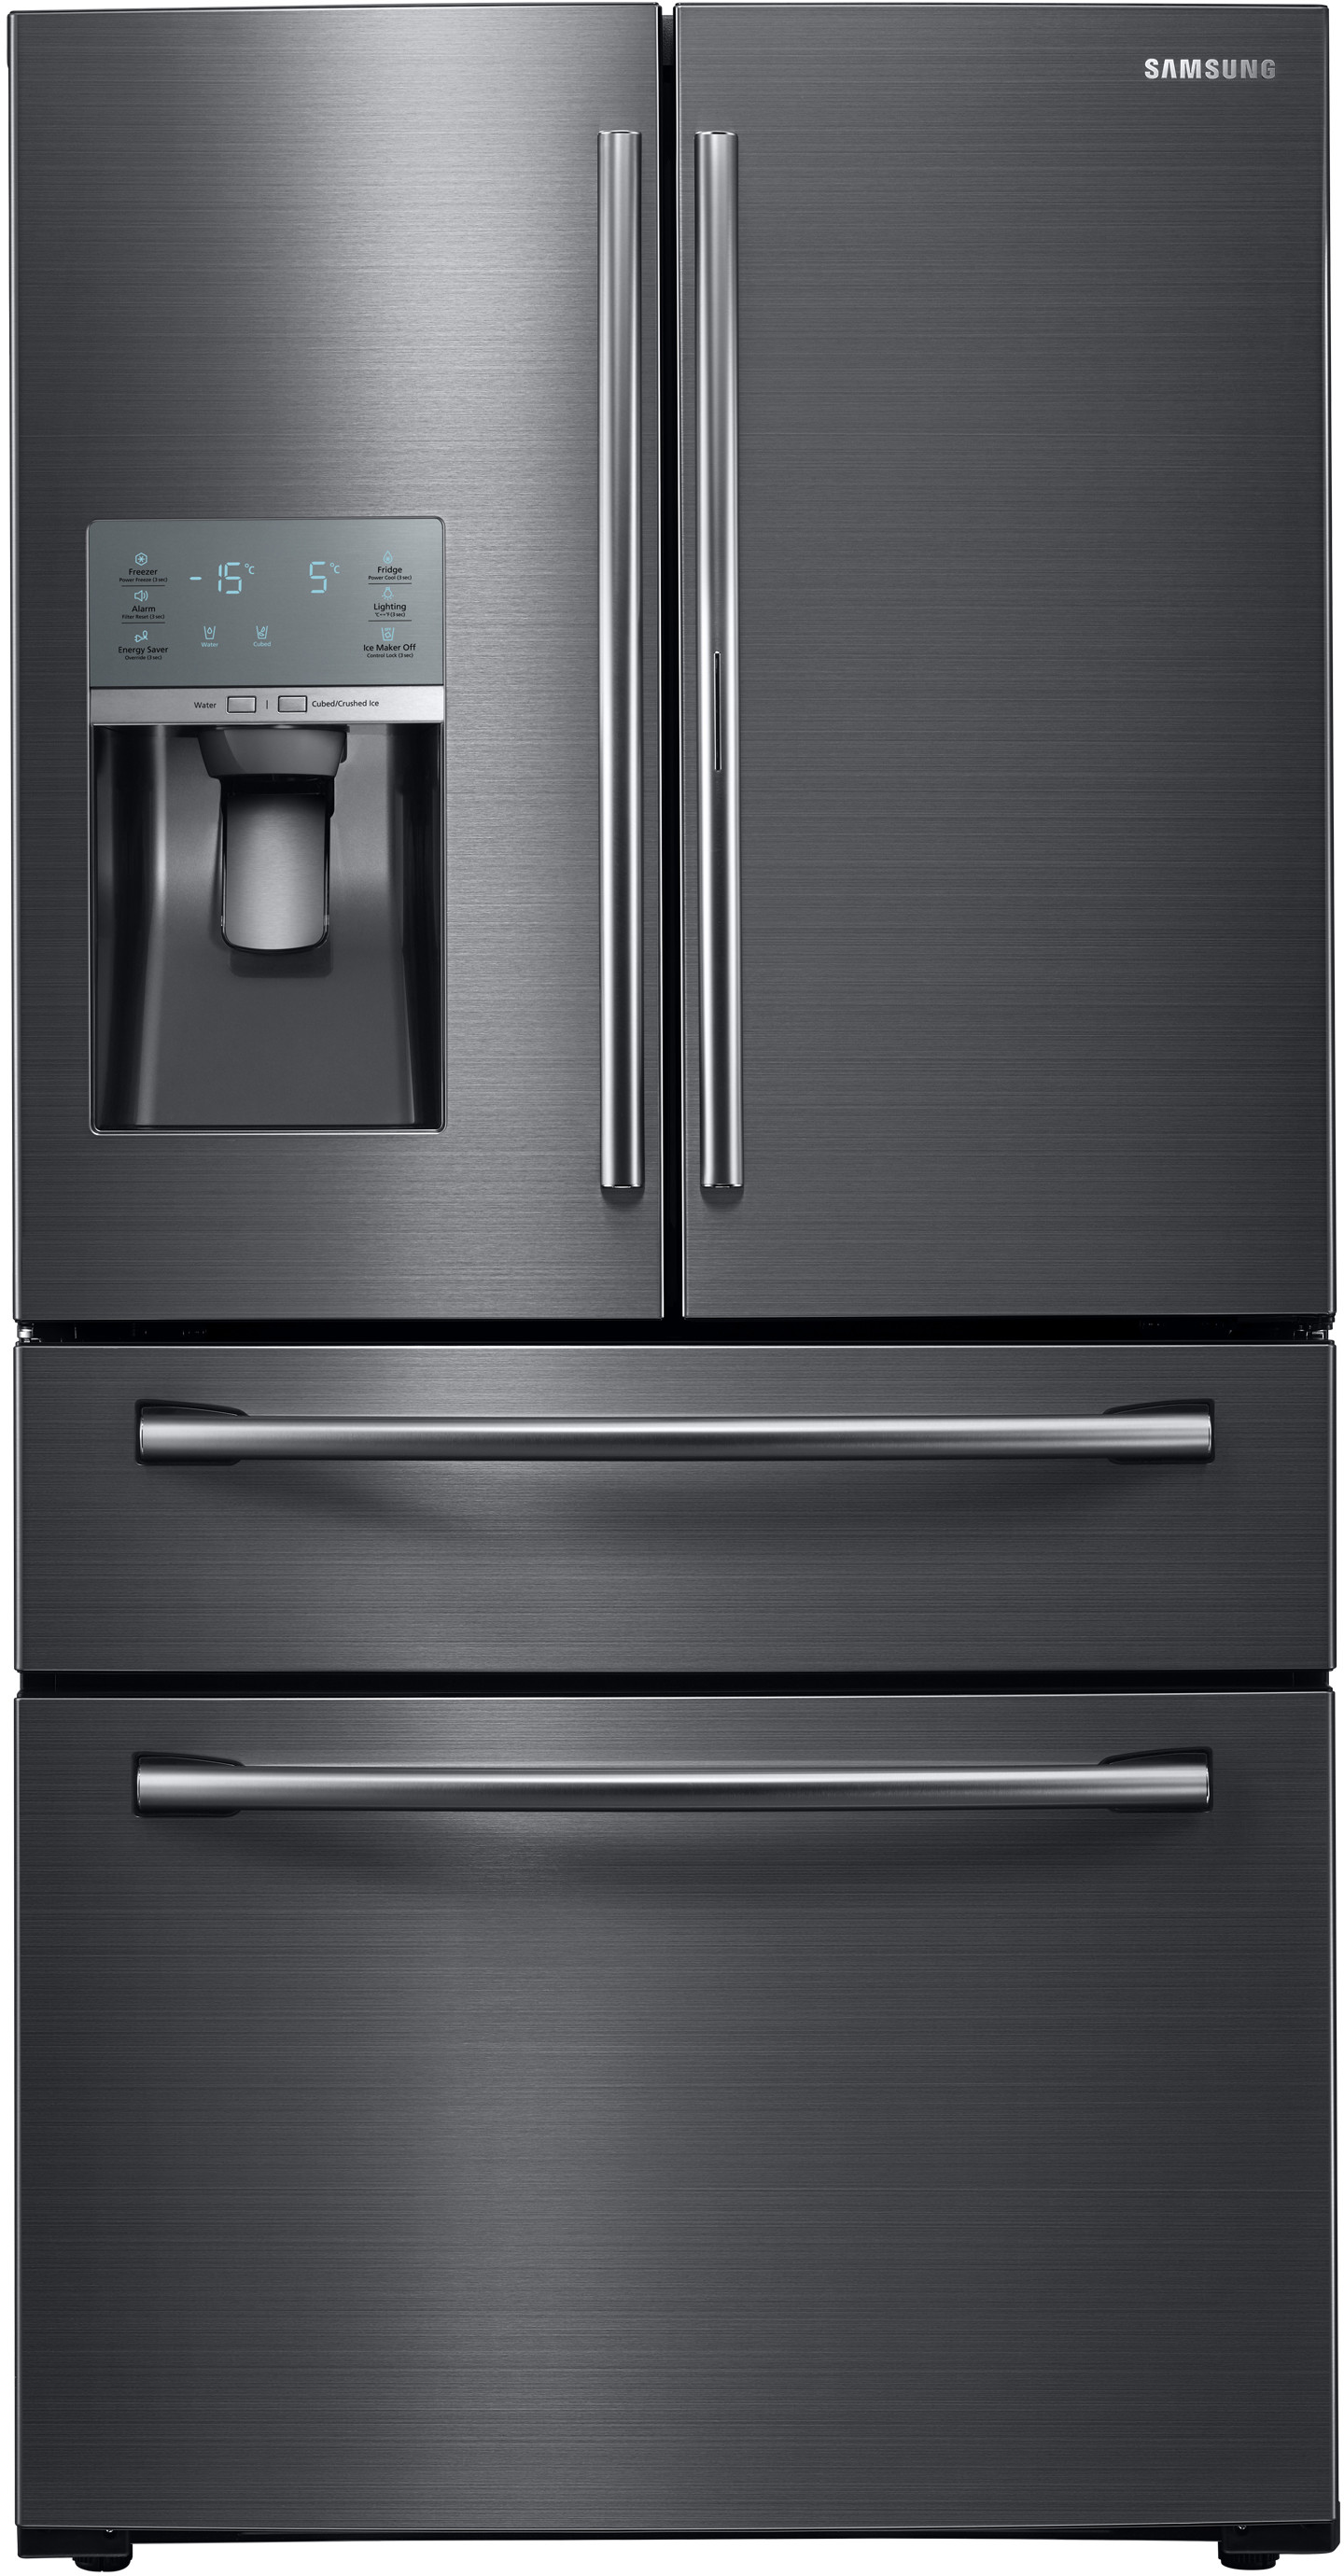 Refrigerator Options Samsung Refrigerators